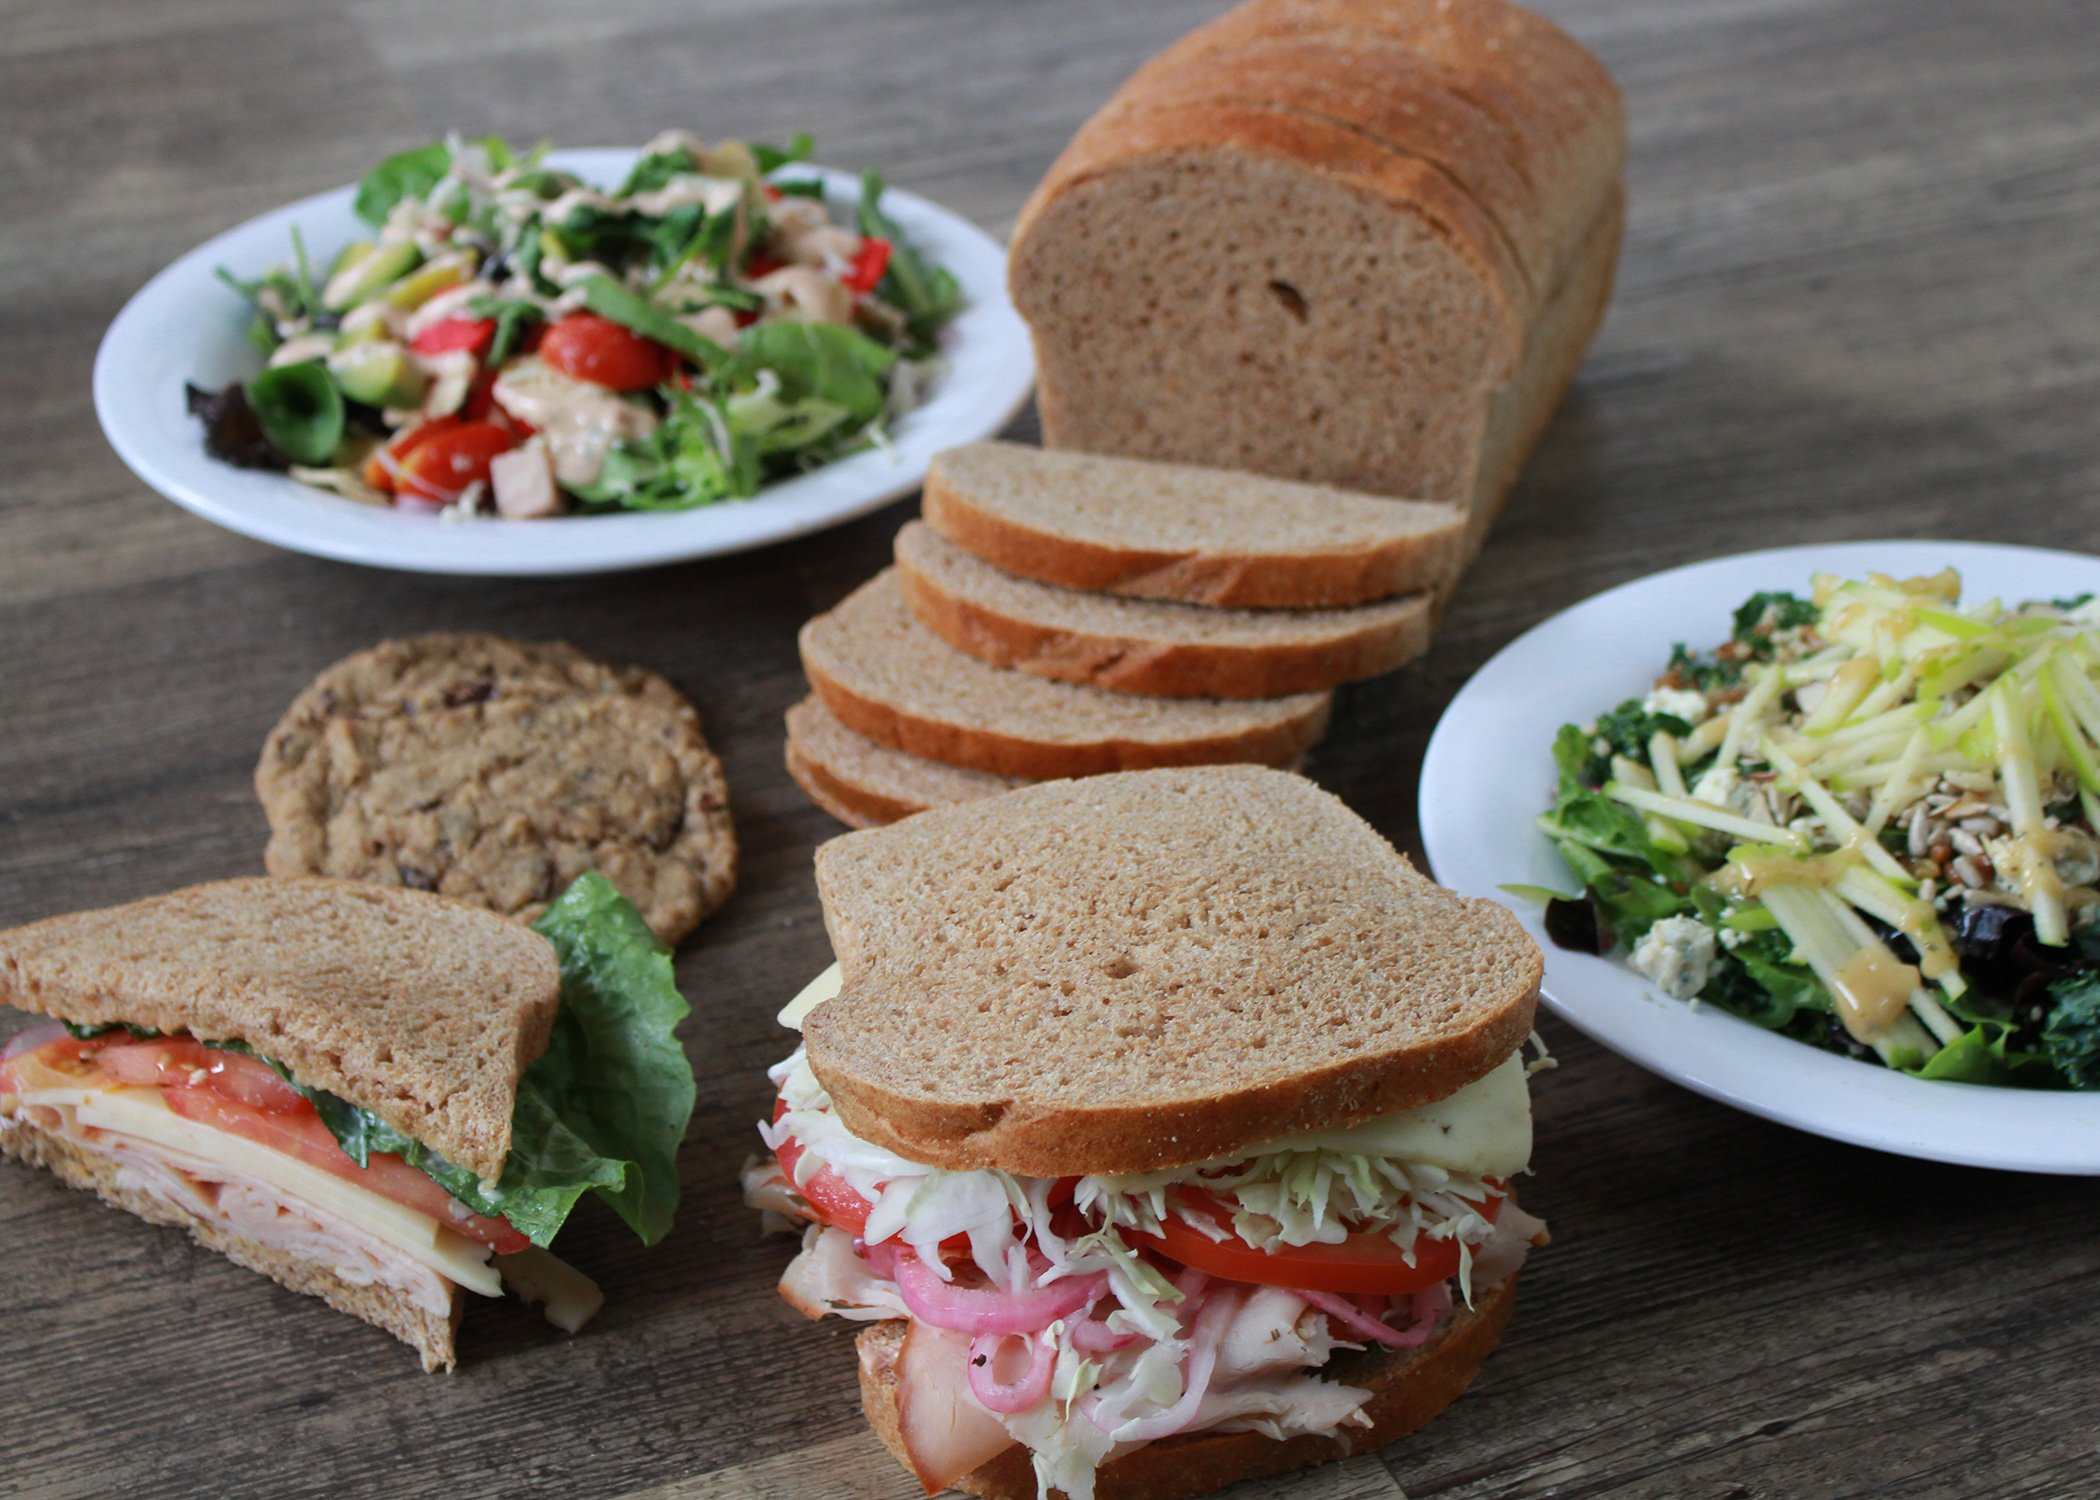 5 Reasons Great Harvest Bread Company is a Slice Above the Rest